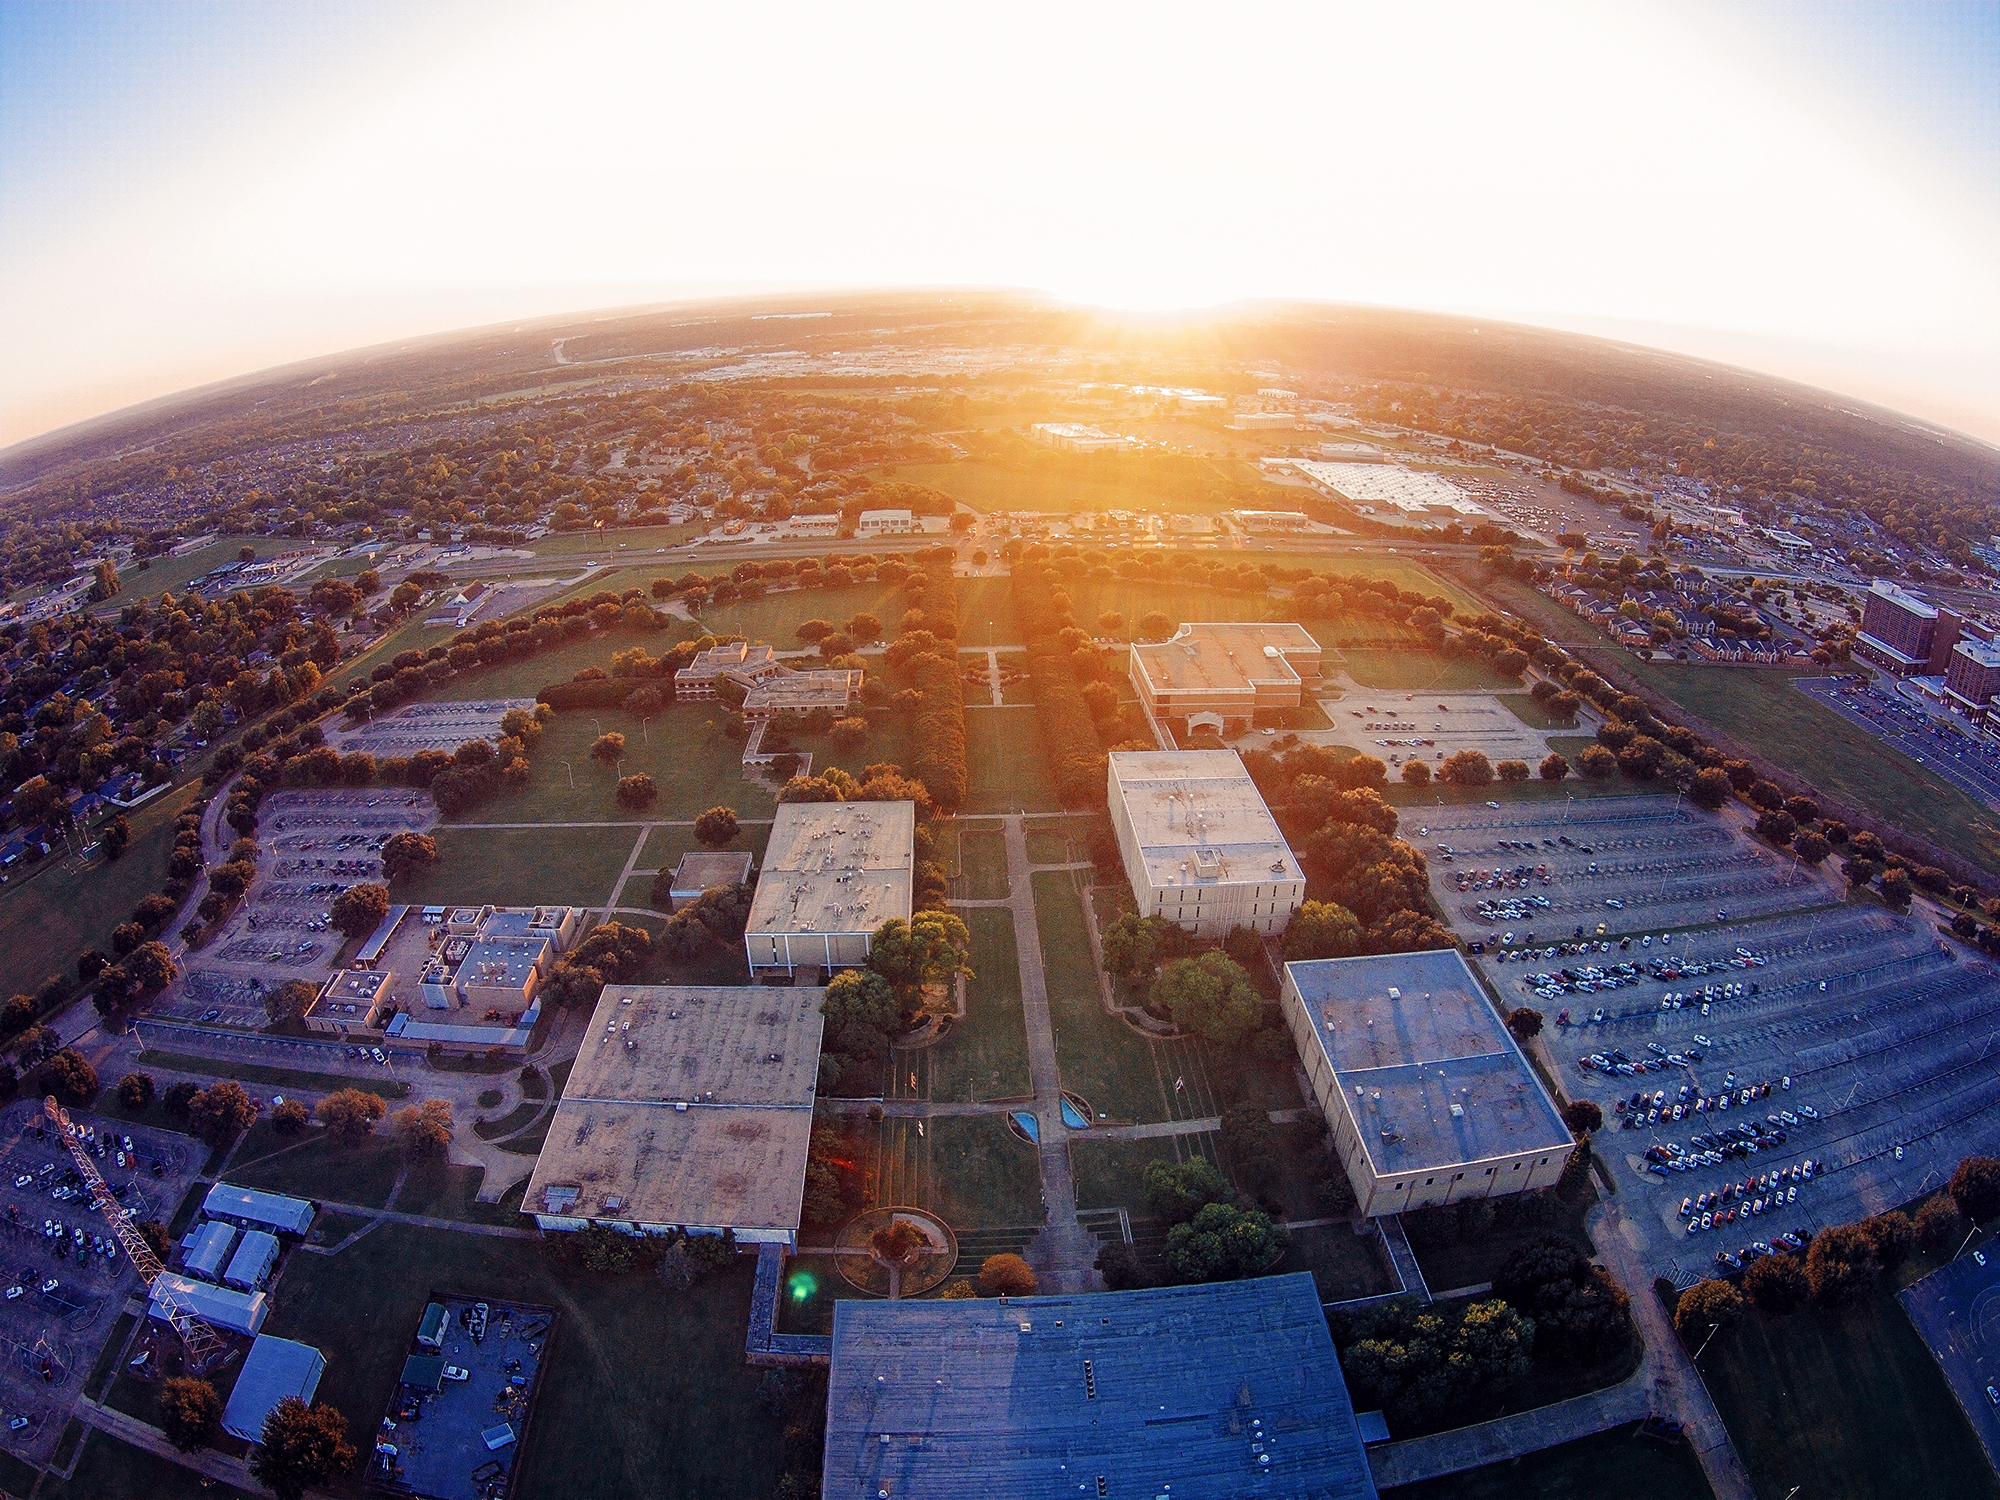 elm-pg-billboard-app Campus Sky View 8